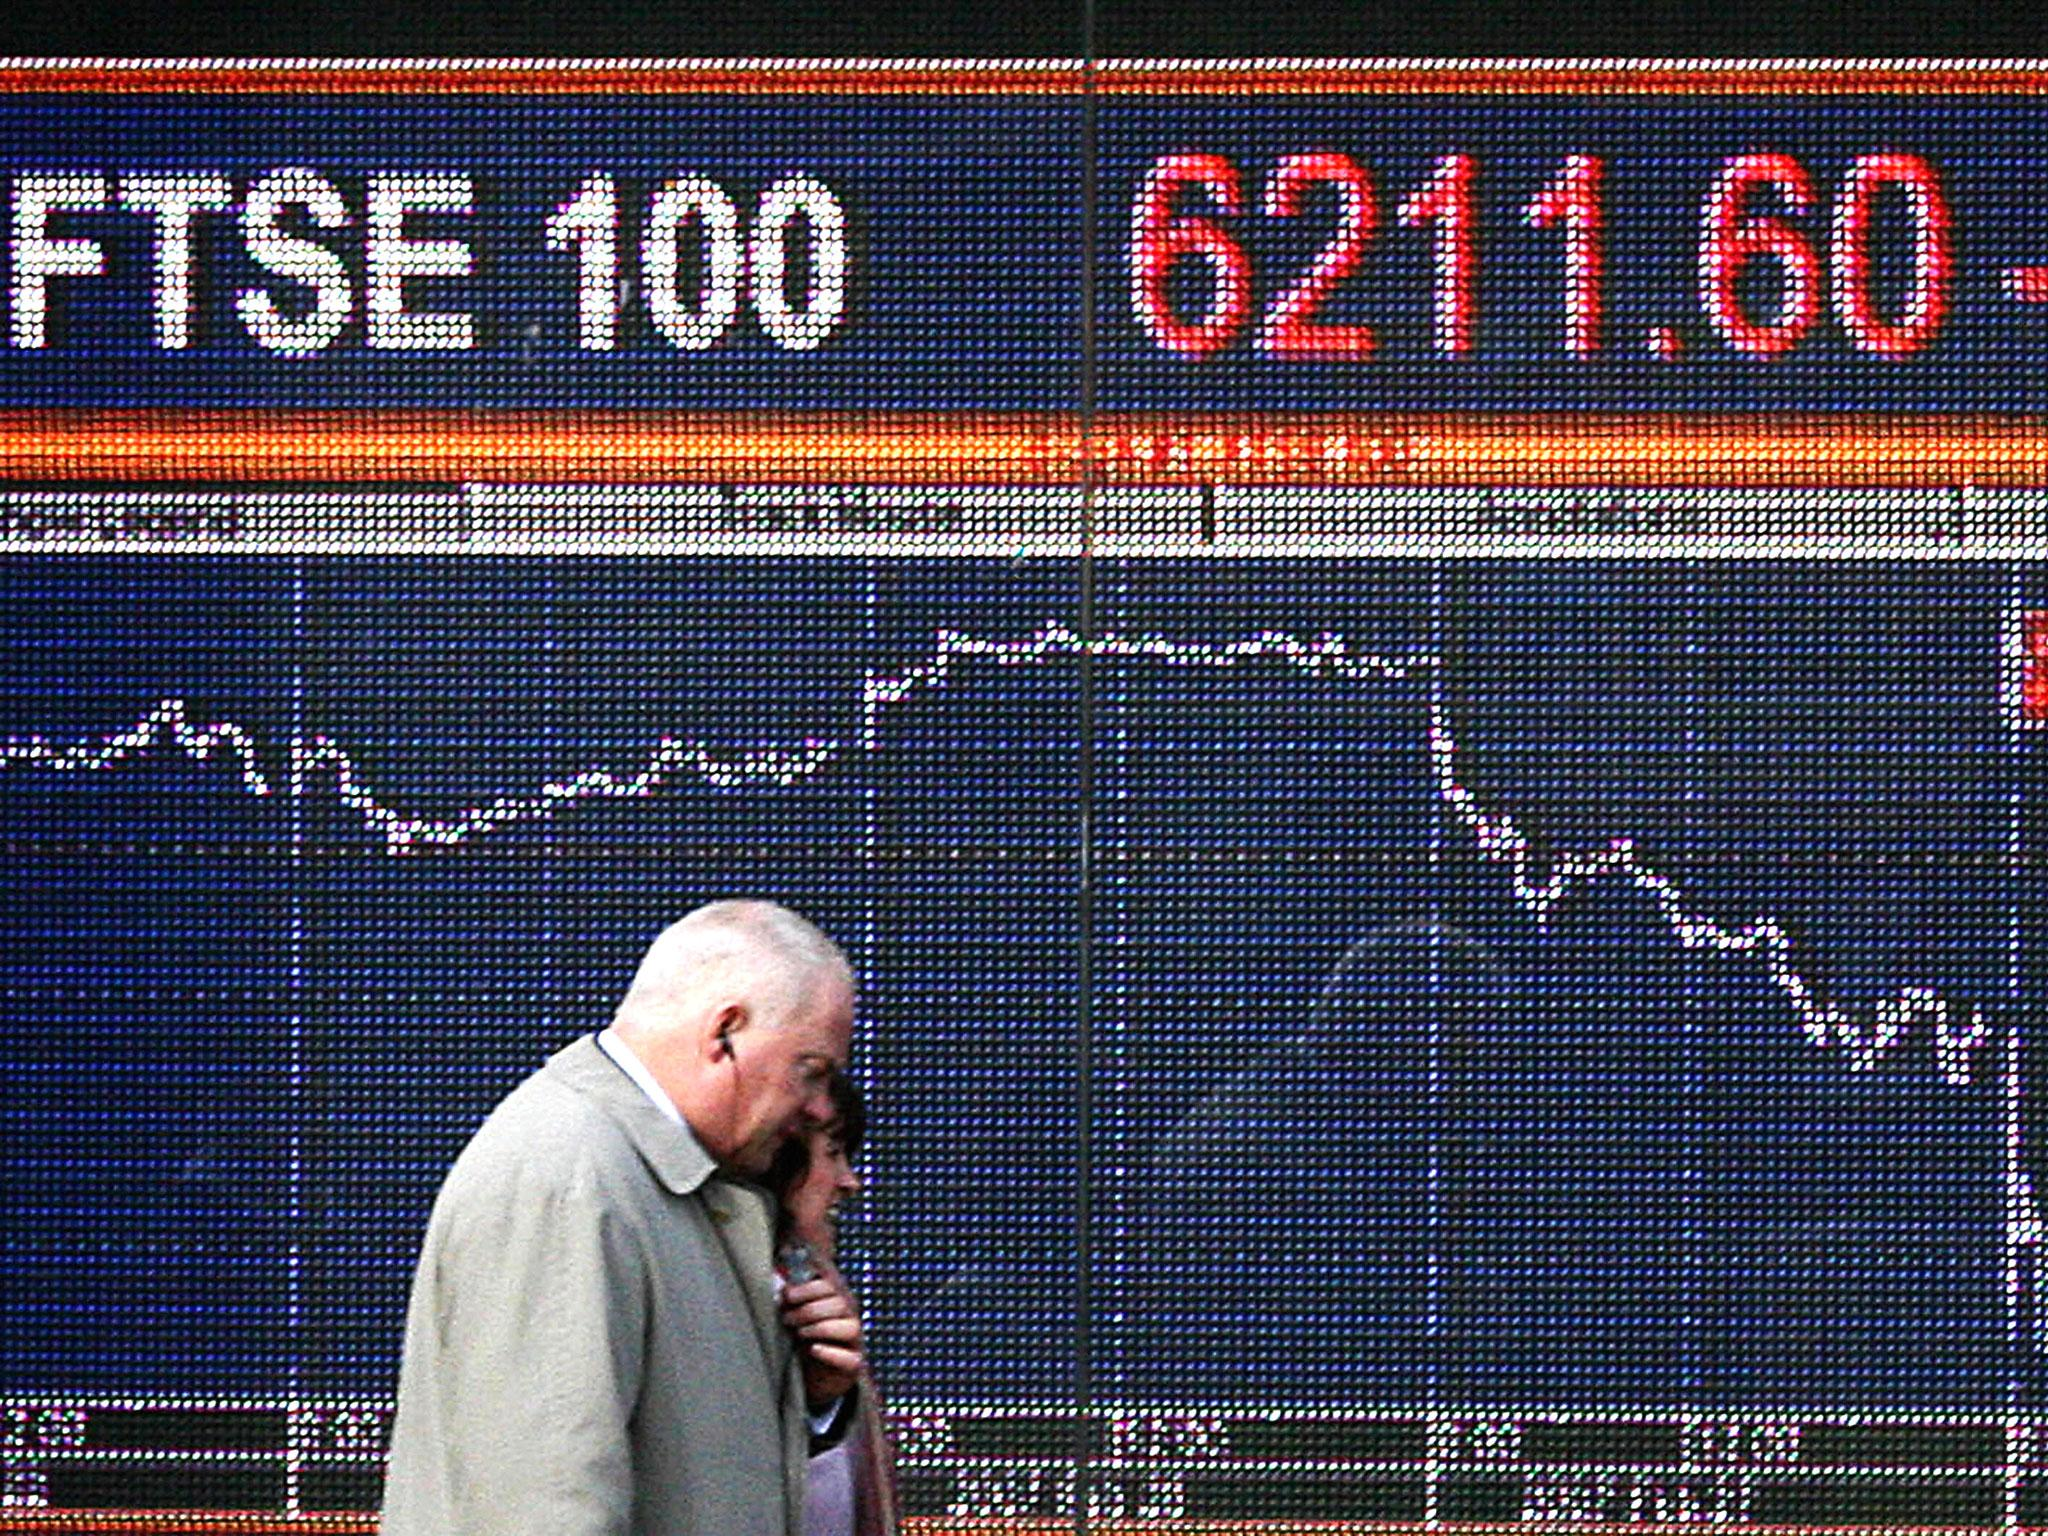 http://static.independent.co.uk/s3fs-public/thumbnails/image/2016/02/12/23/FTSE100-Getty.jpg